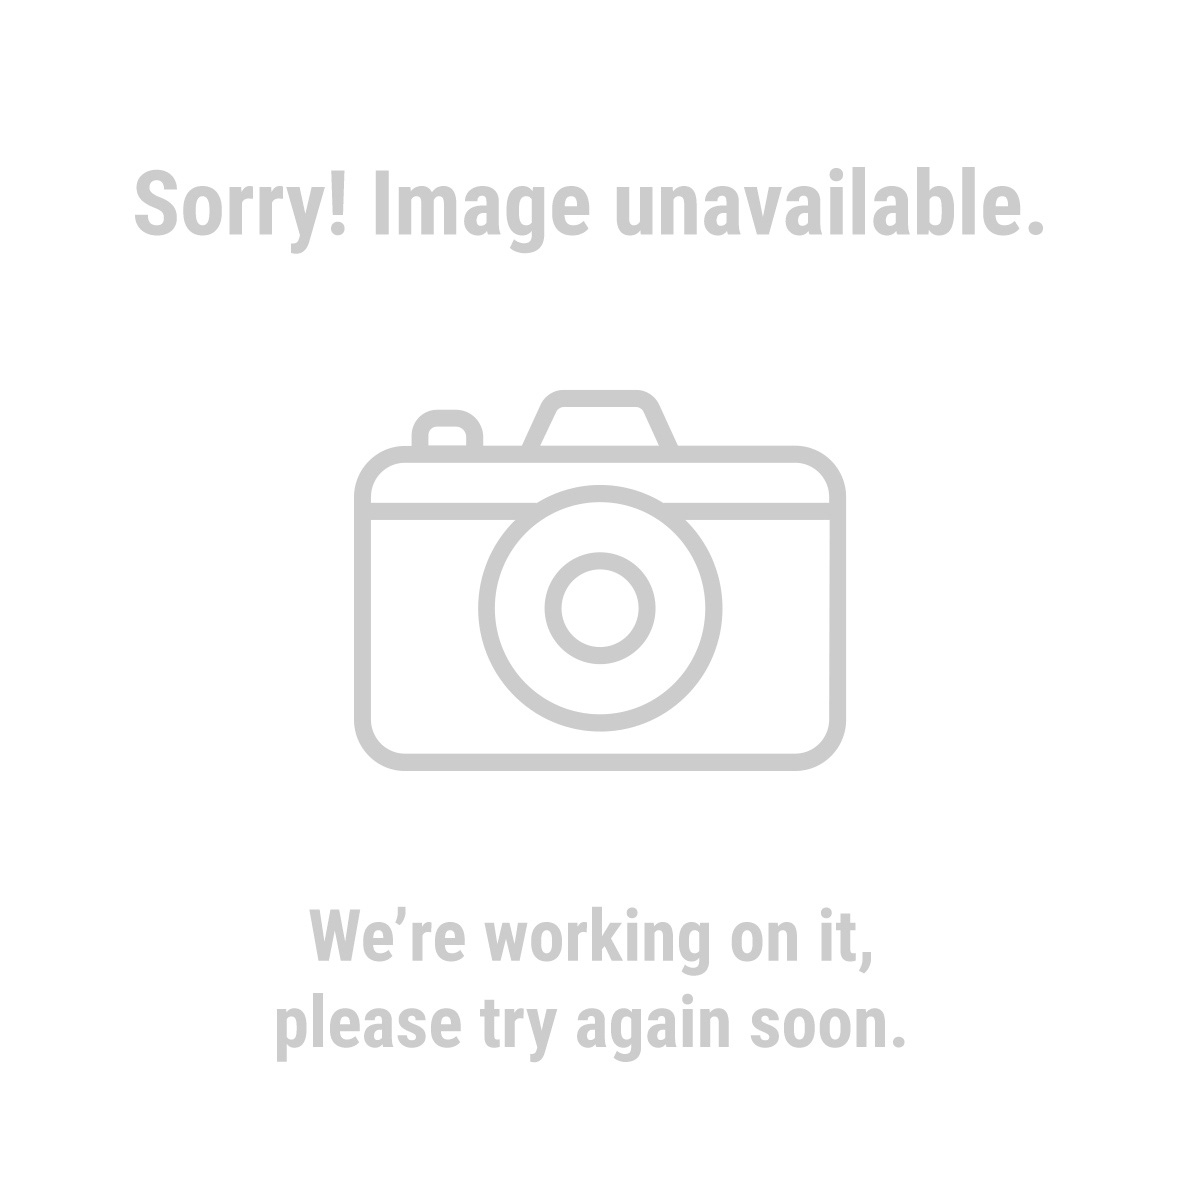 Chicago Electric Power Tools 69334 1-9/16 in. 8.5 Amp Heavy Duty SDS Max Type Variable Speed Rotary Hammer